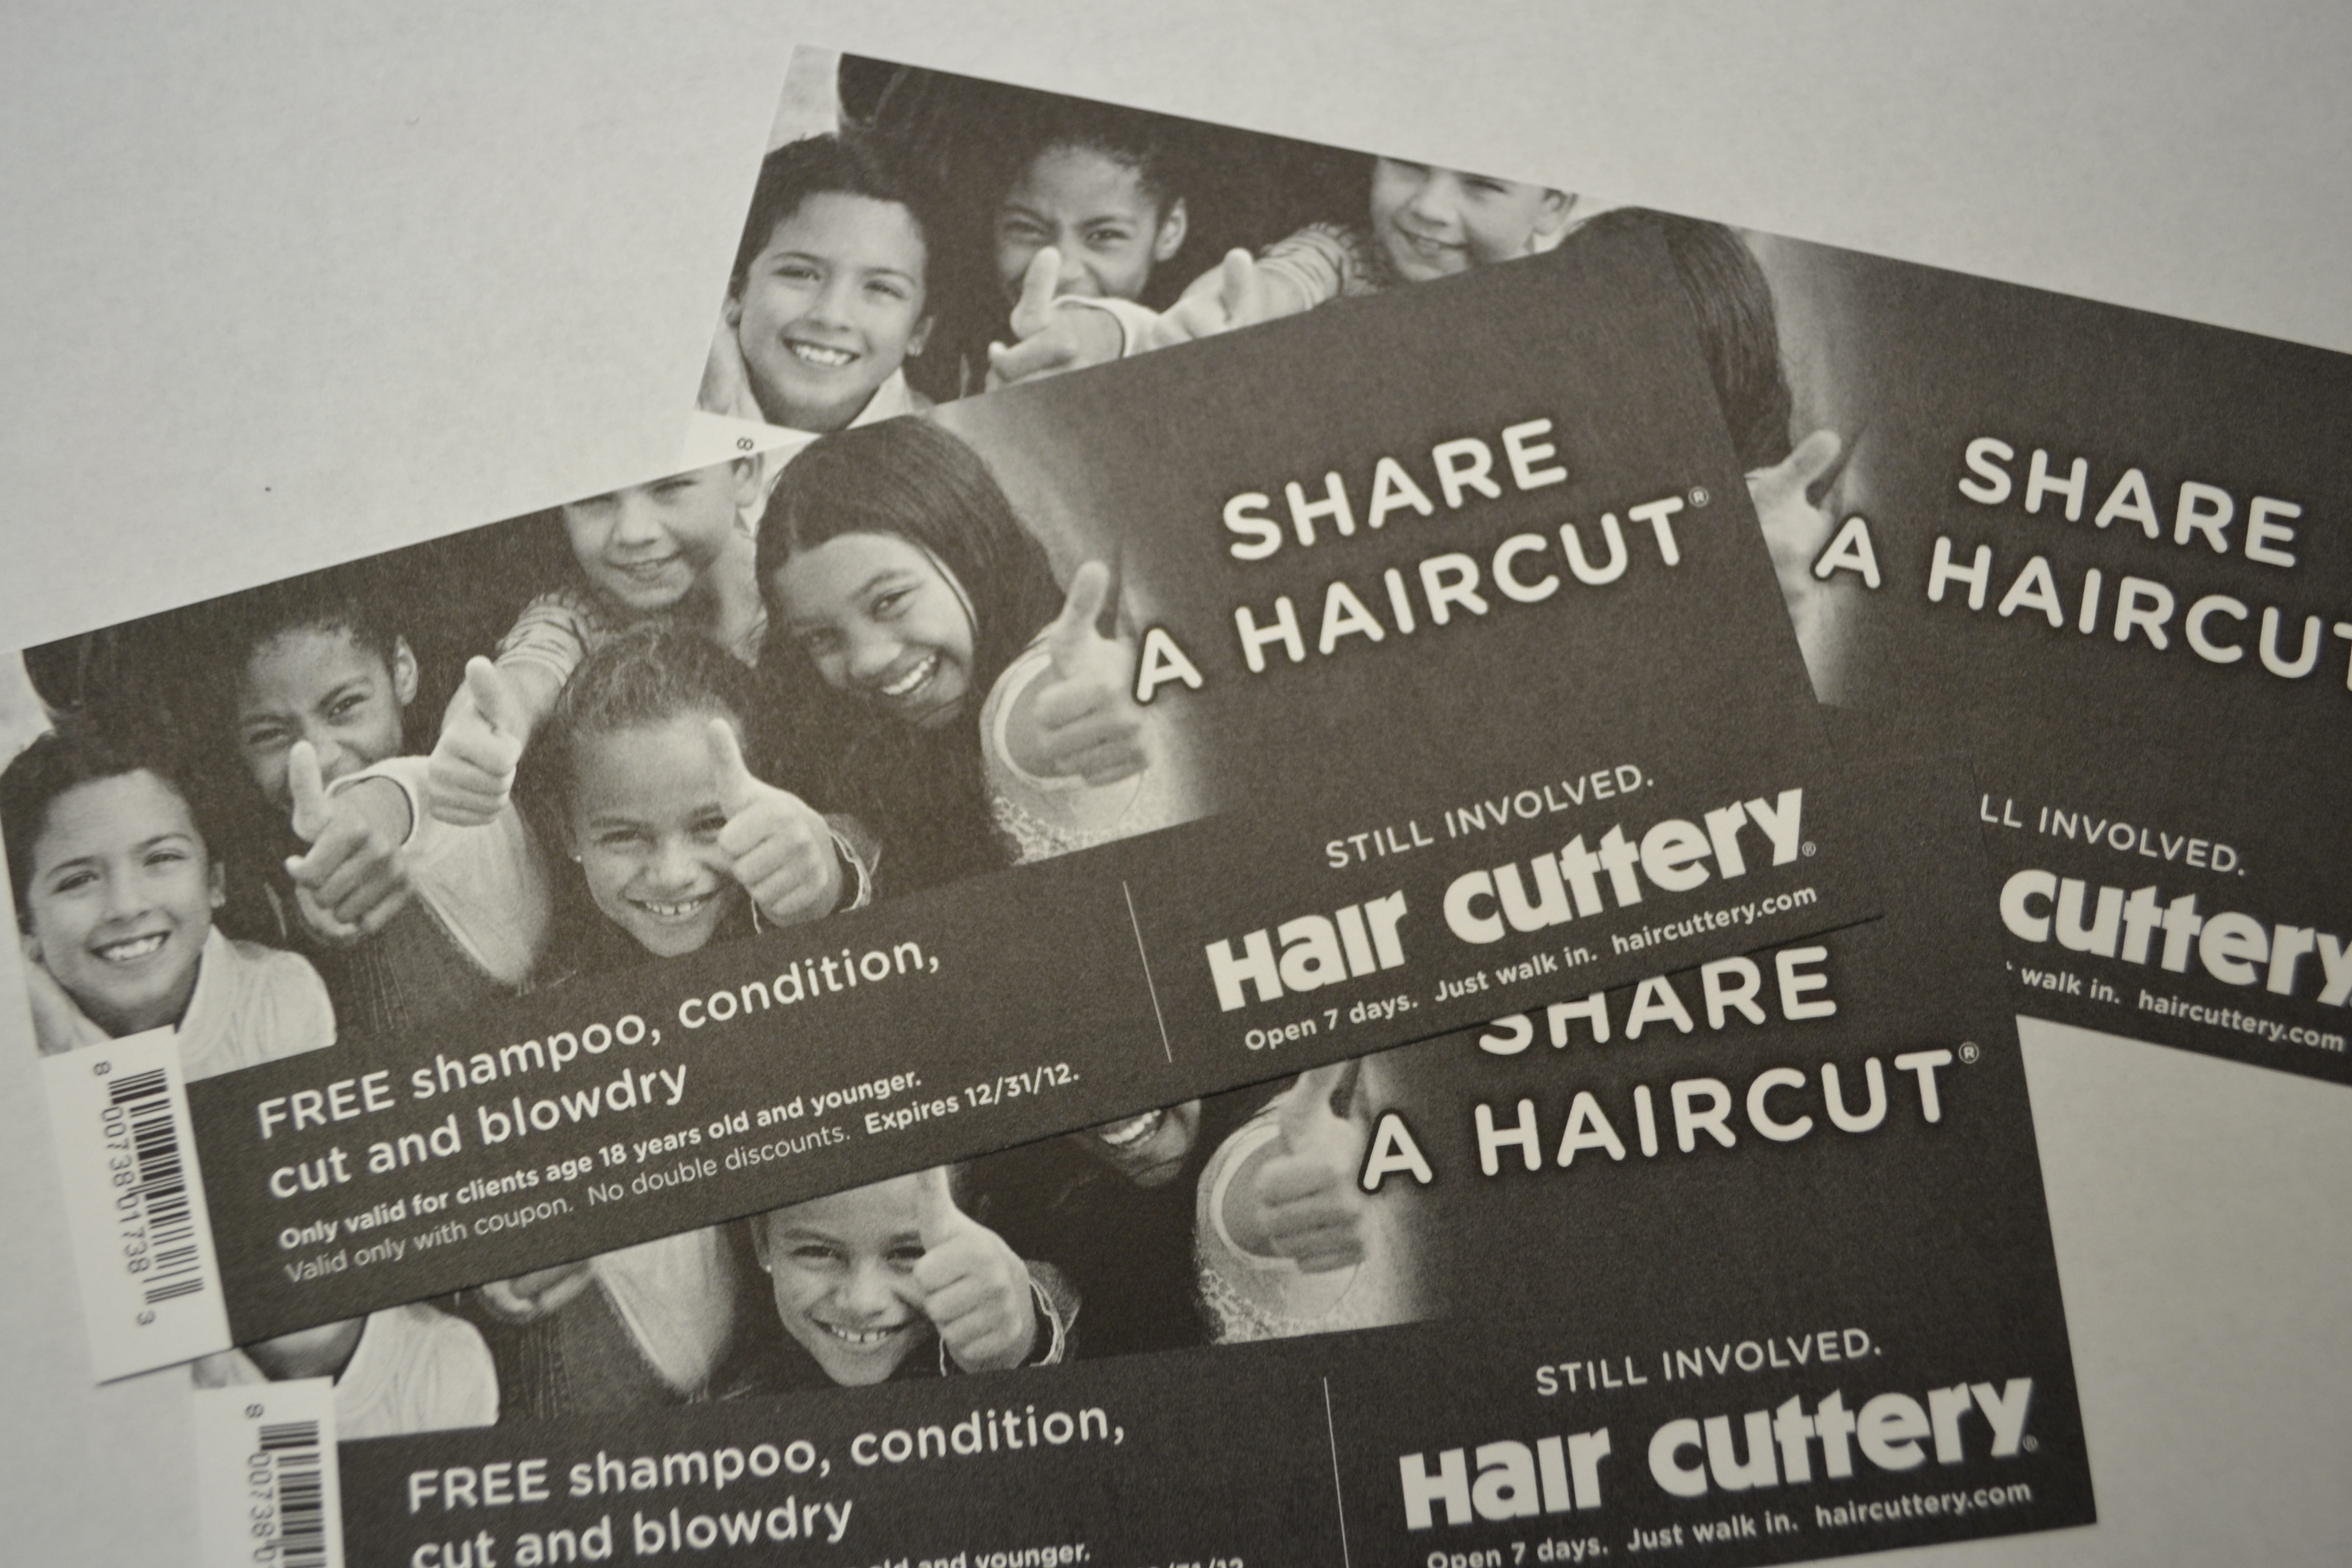 Hair Cuttery | The Hope Center Of Hagerstown - Free Printable Hair Cuttery Coupons